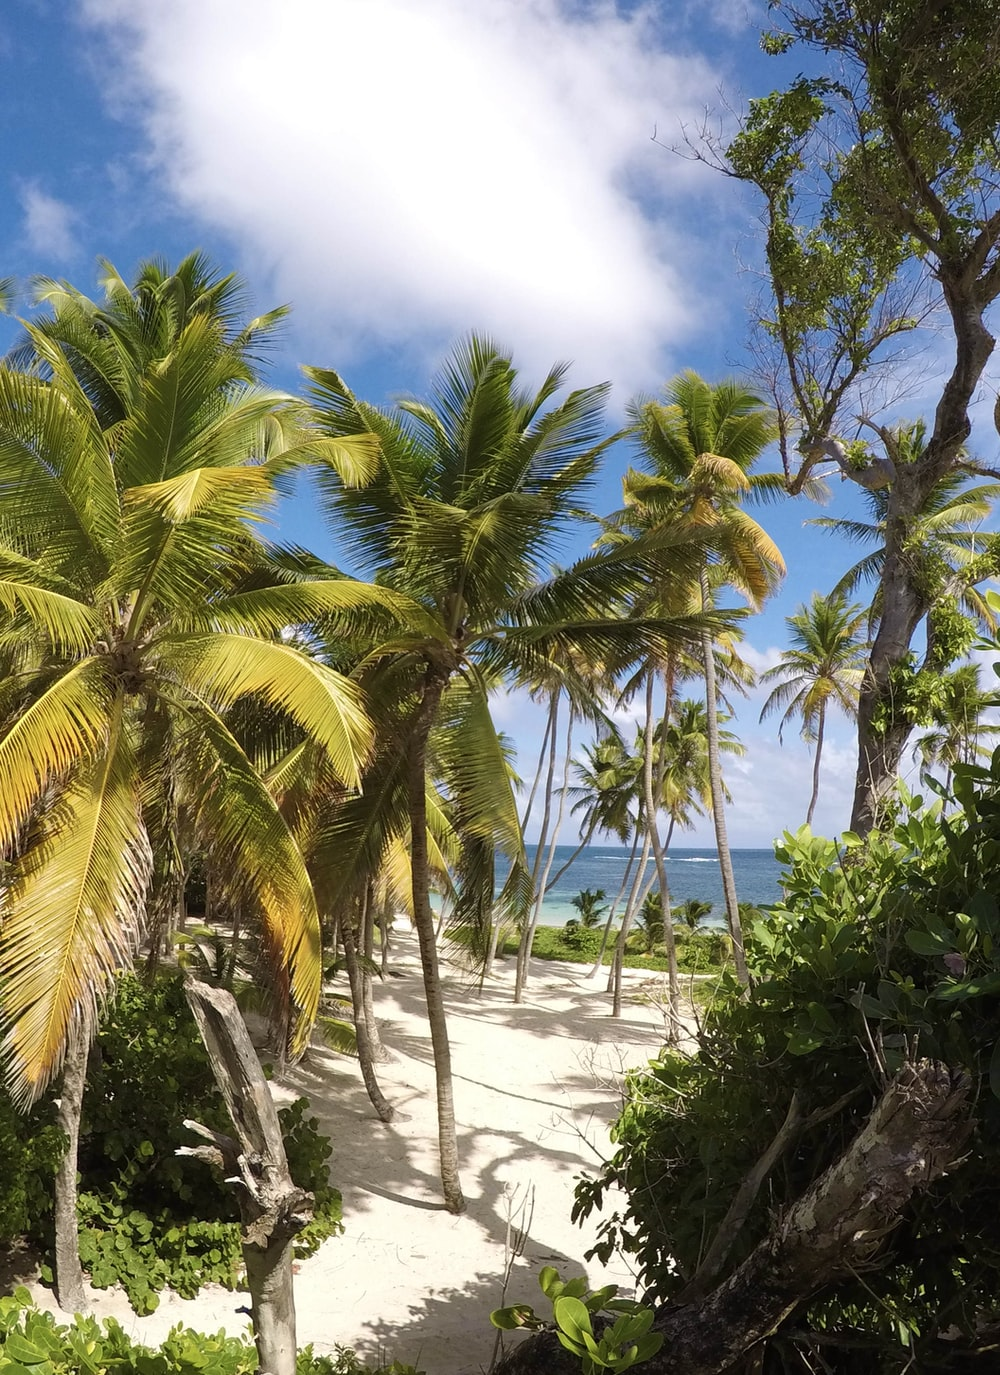 green palm trees on white sand beach during daytime